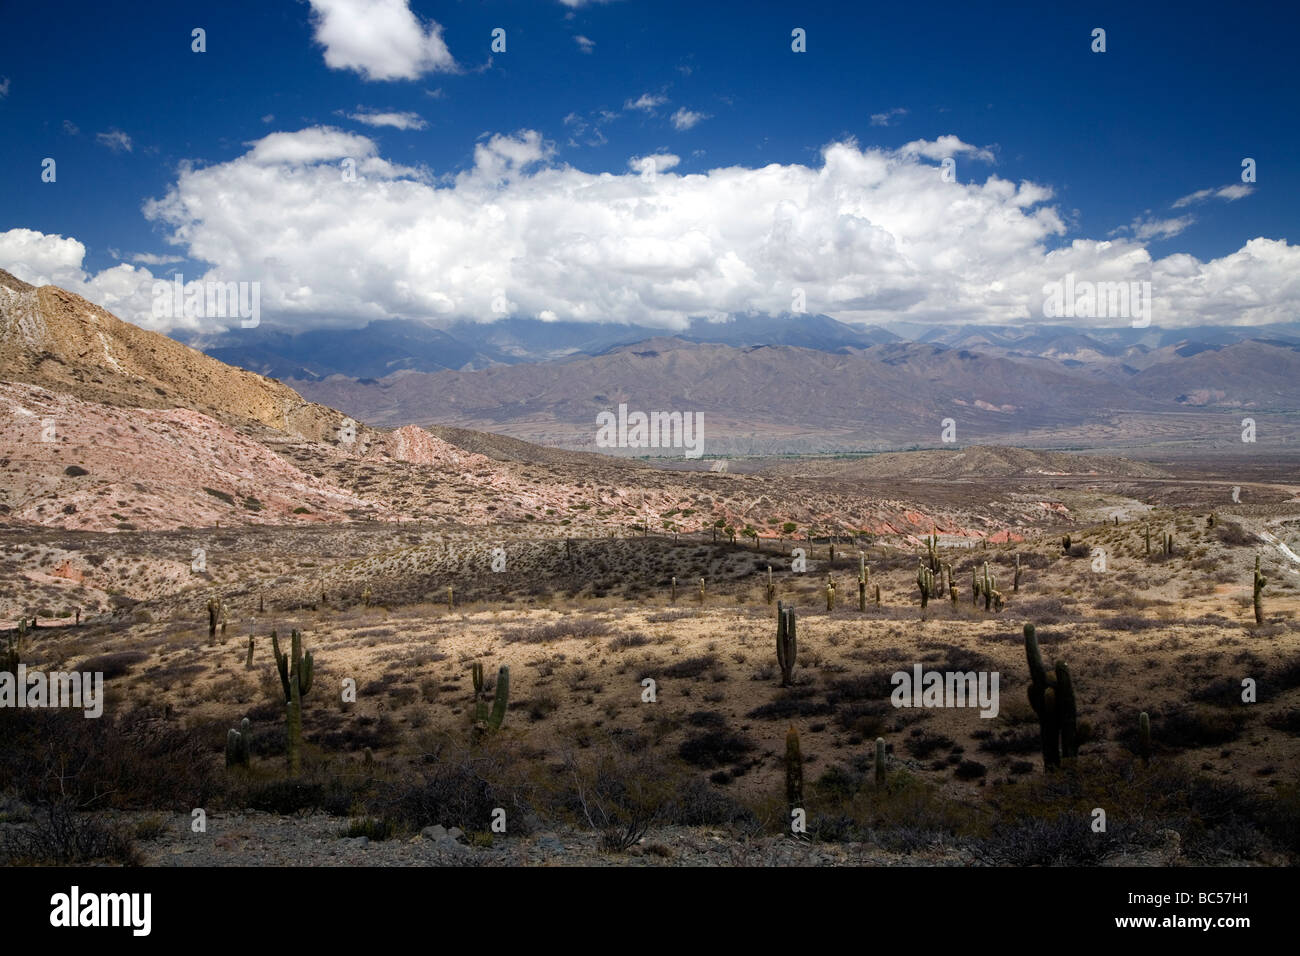 Route 40 between Cachi and Payogasta, Argentina - Stock Image